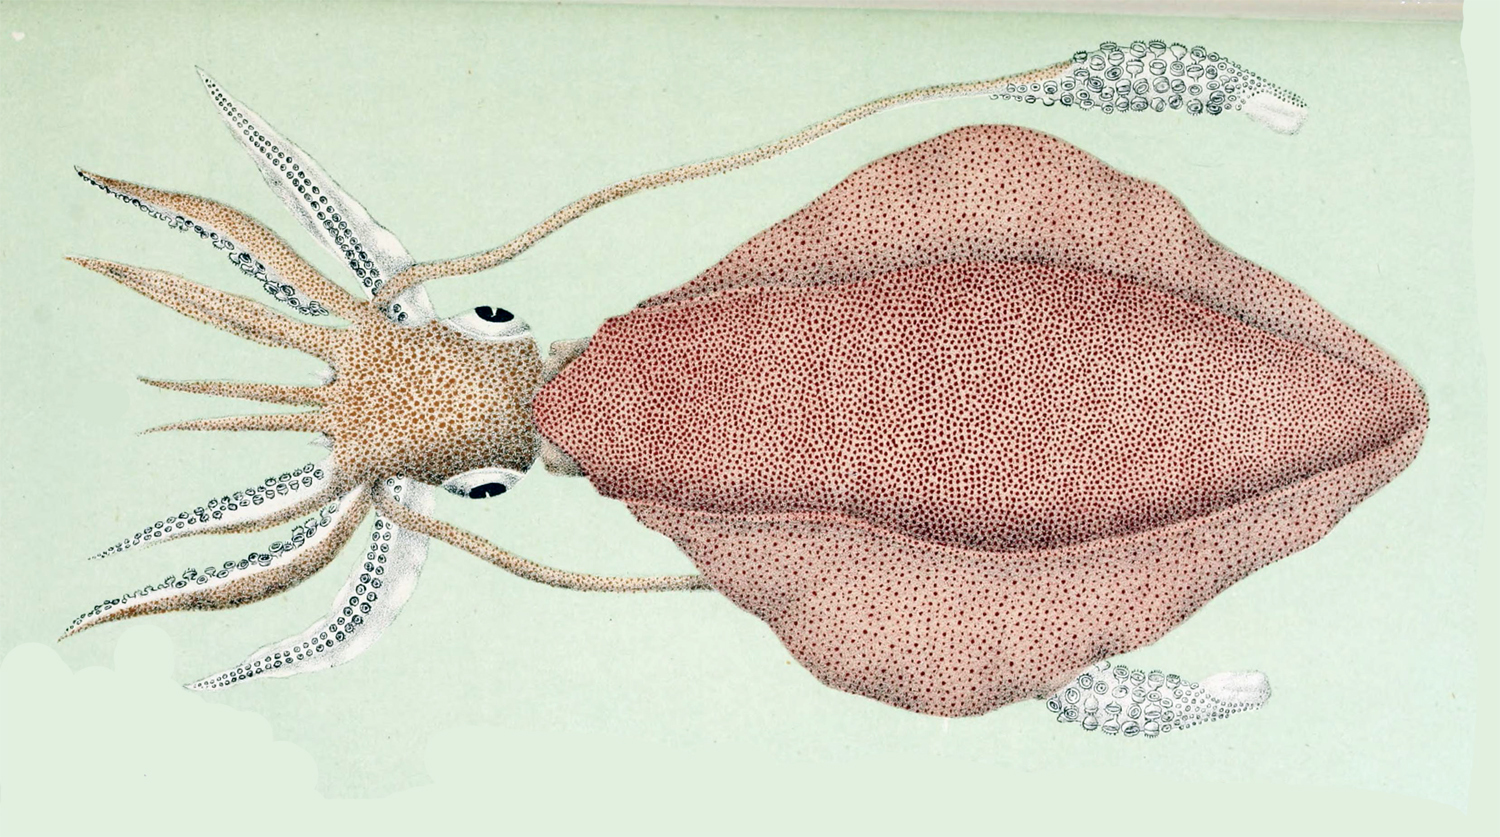 Image of Southern reef squid